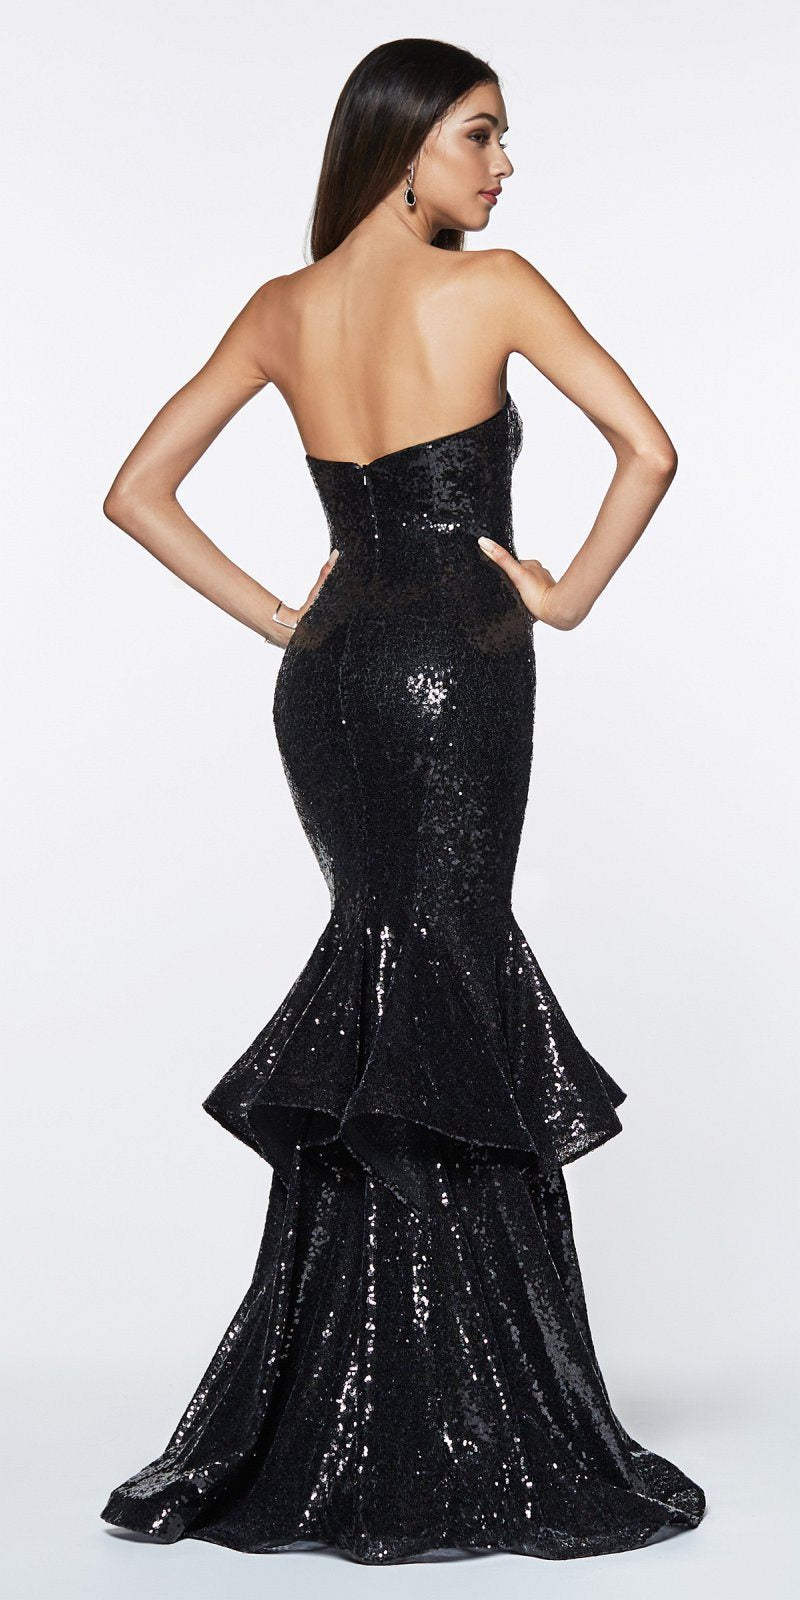 90b07ffdb13 ... Rose Gold Strapless Cinderella Divine UE010 Long Sequin Sheath Mermaid  Prom Gown Black Strapless Back View ...